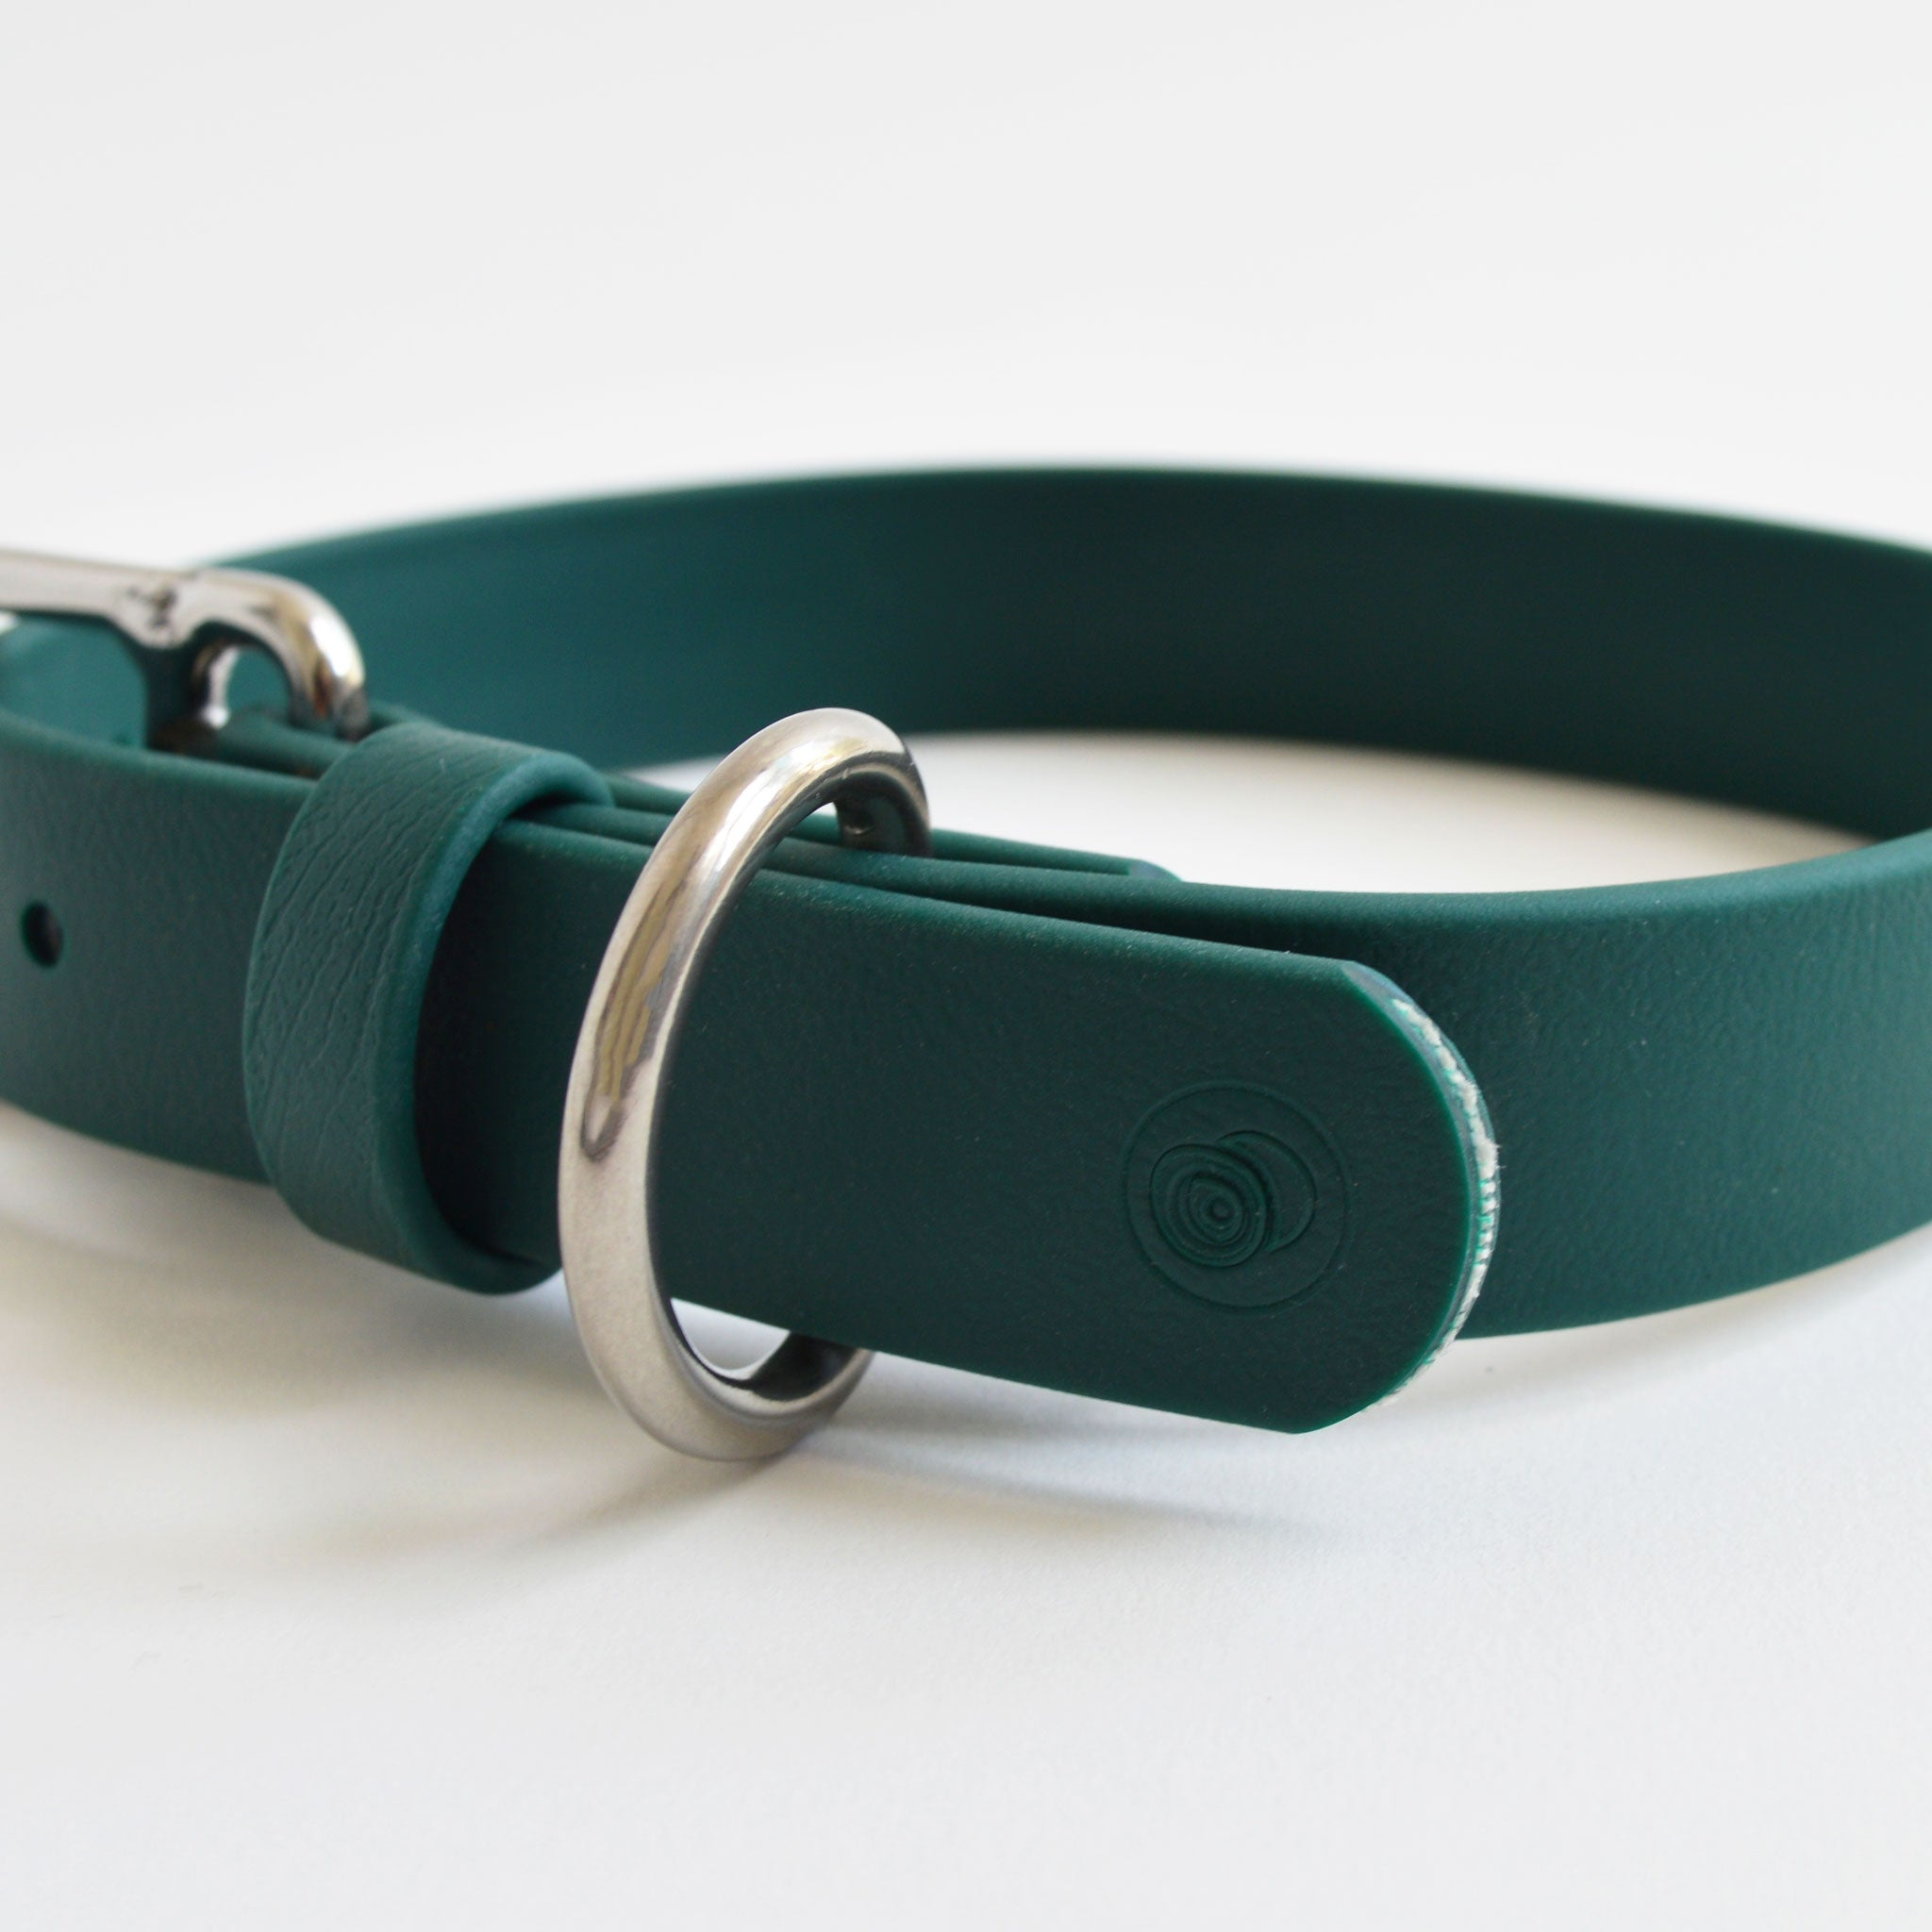 The Loop Collar